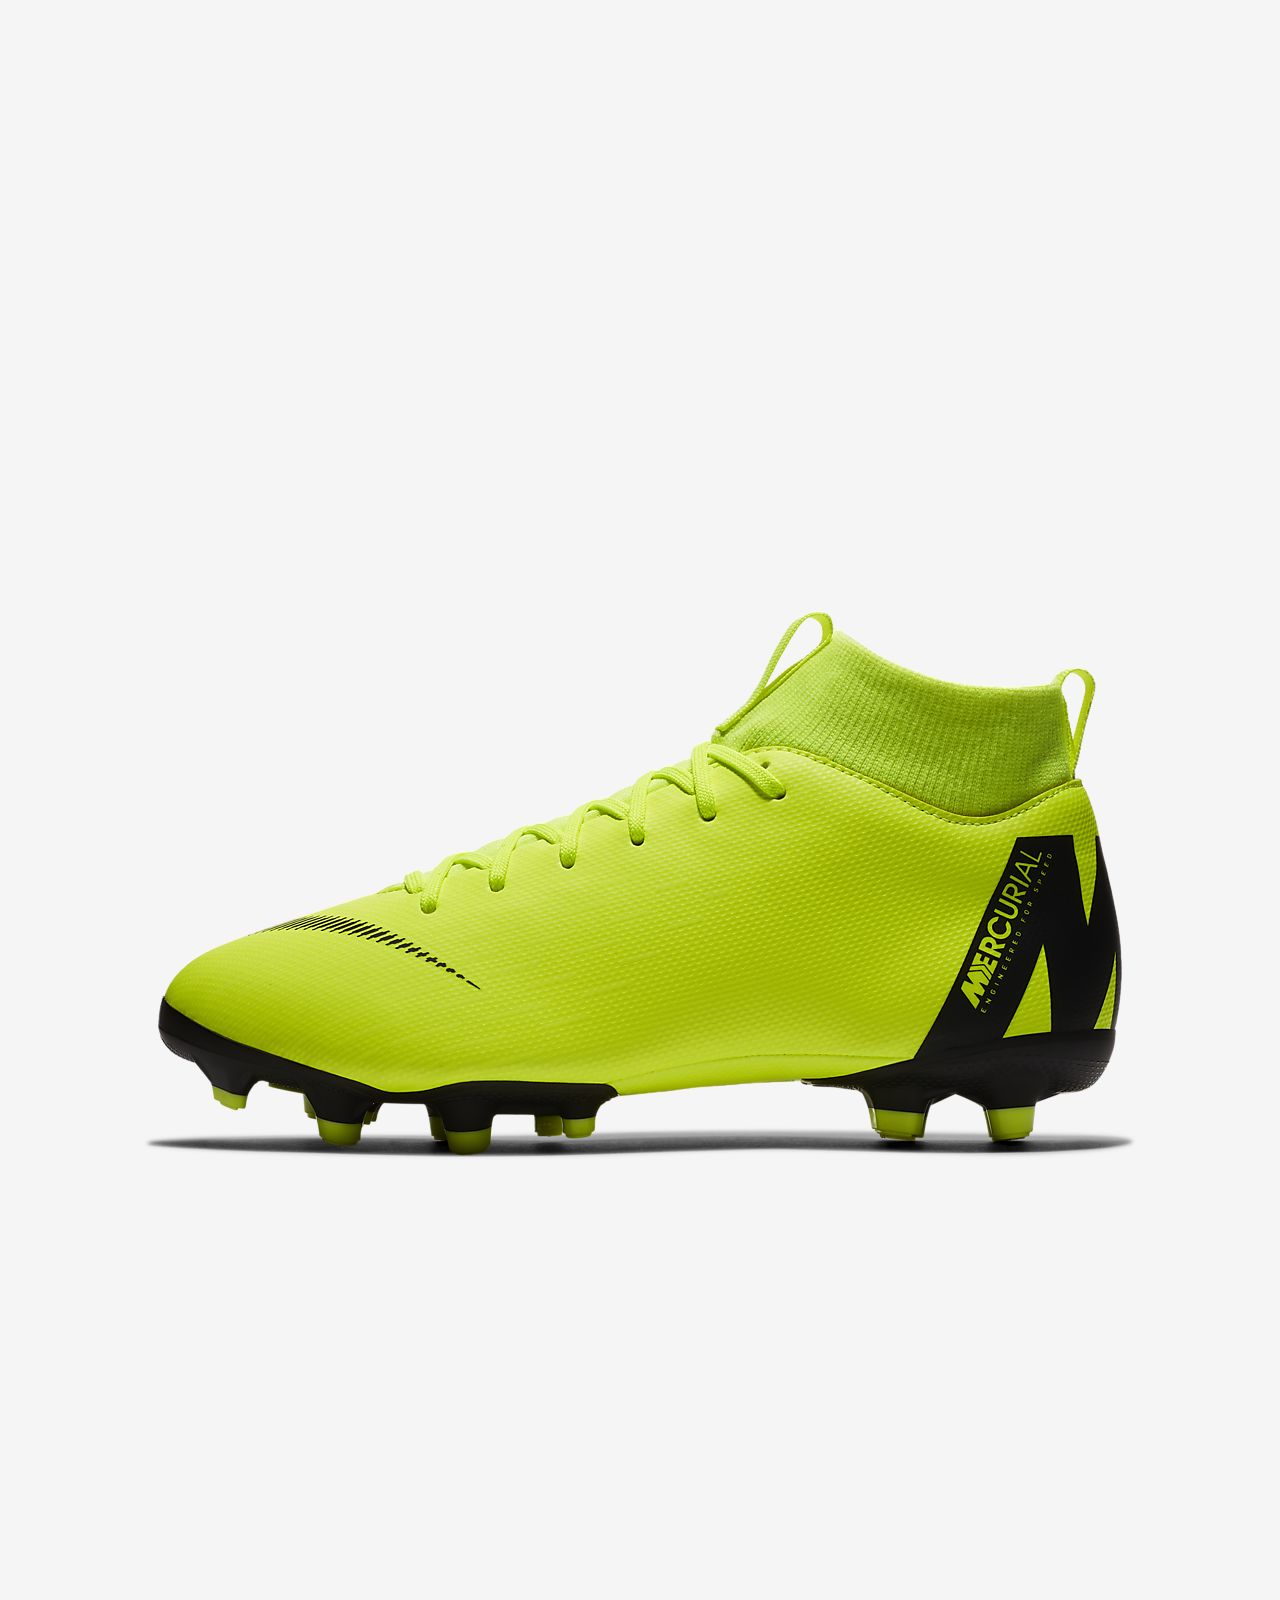 591c699b0 ... Nike Jr. Superfly 6 Academy MG Younger Older Kids  Multi-Ground Football